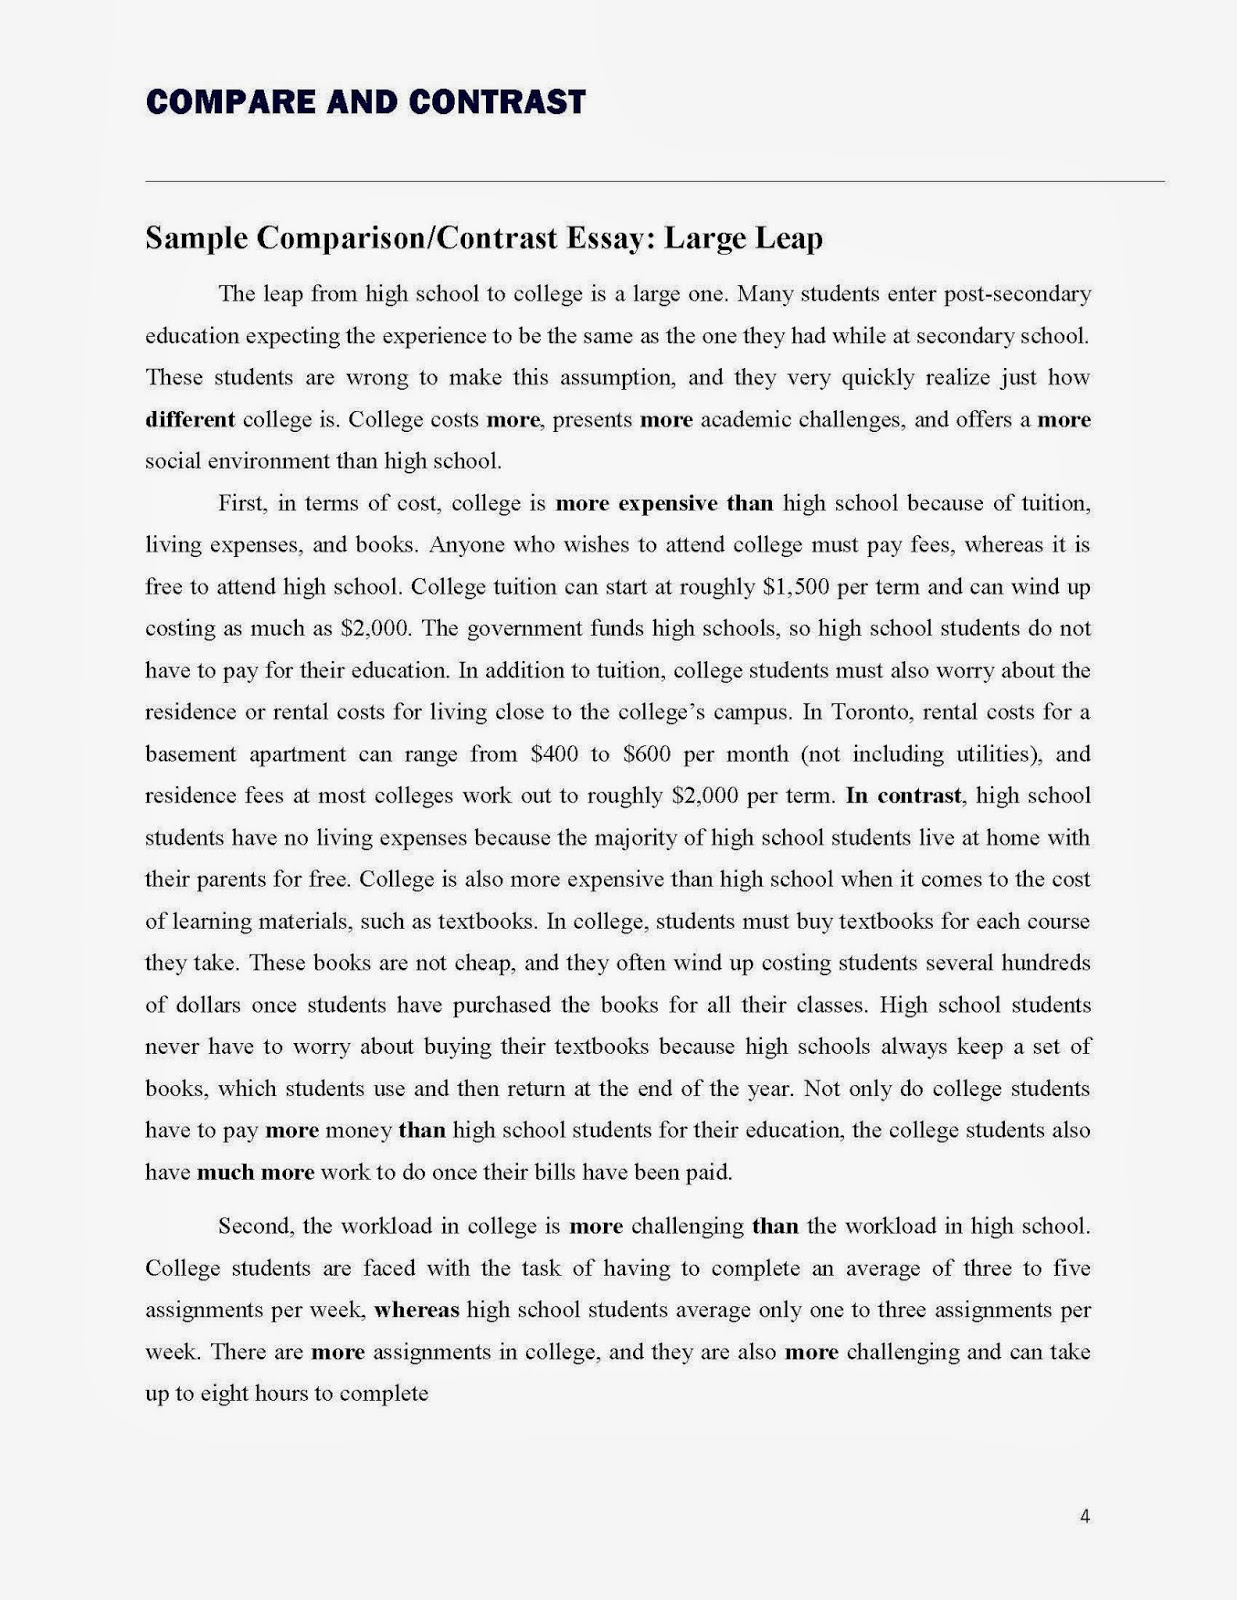 Help writing a compare and contrast essay compare-and-contrast